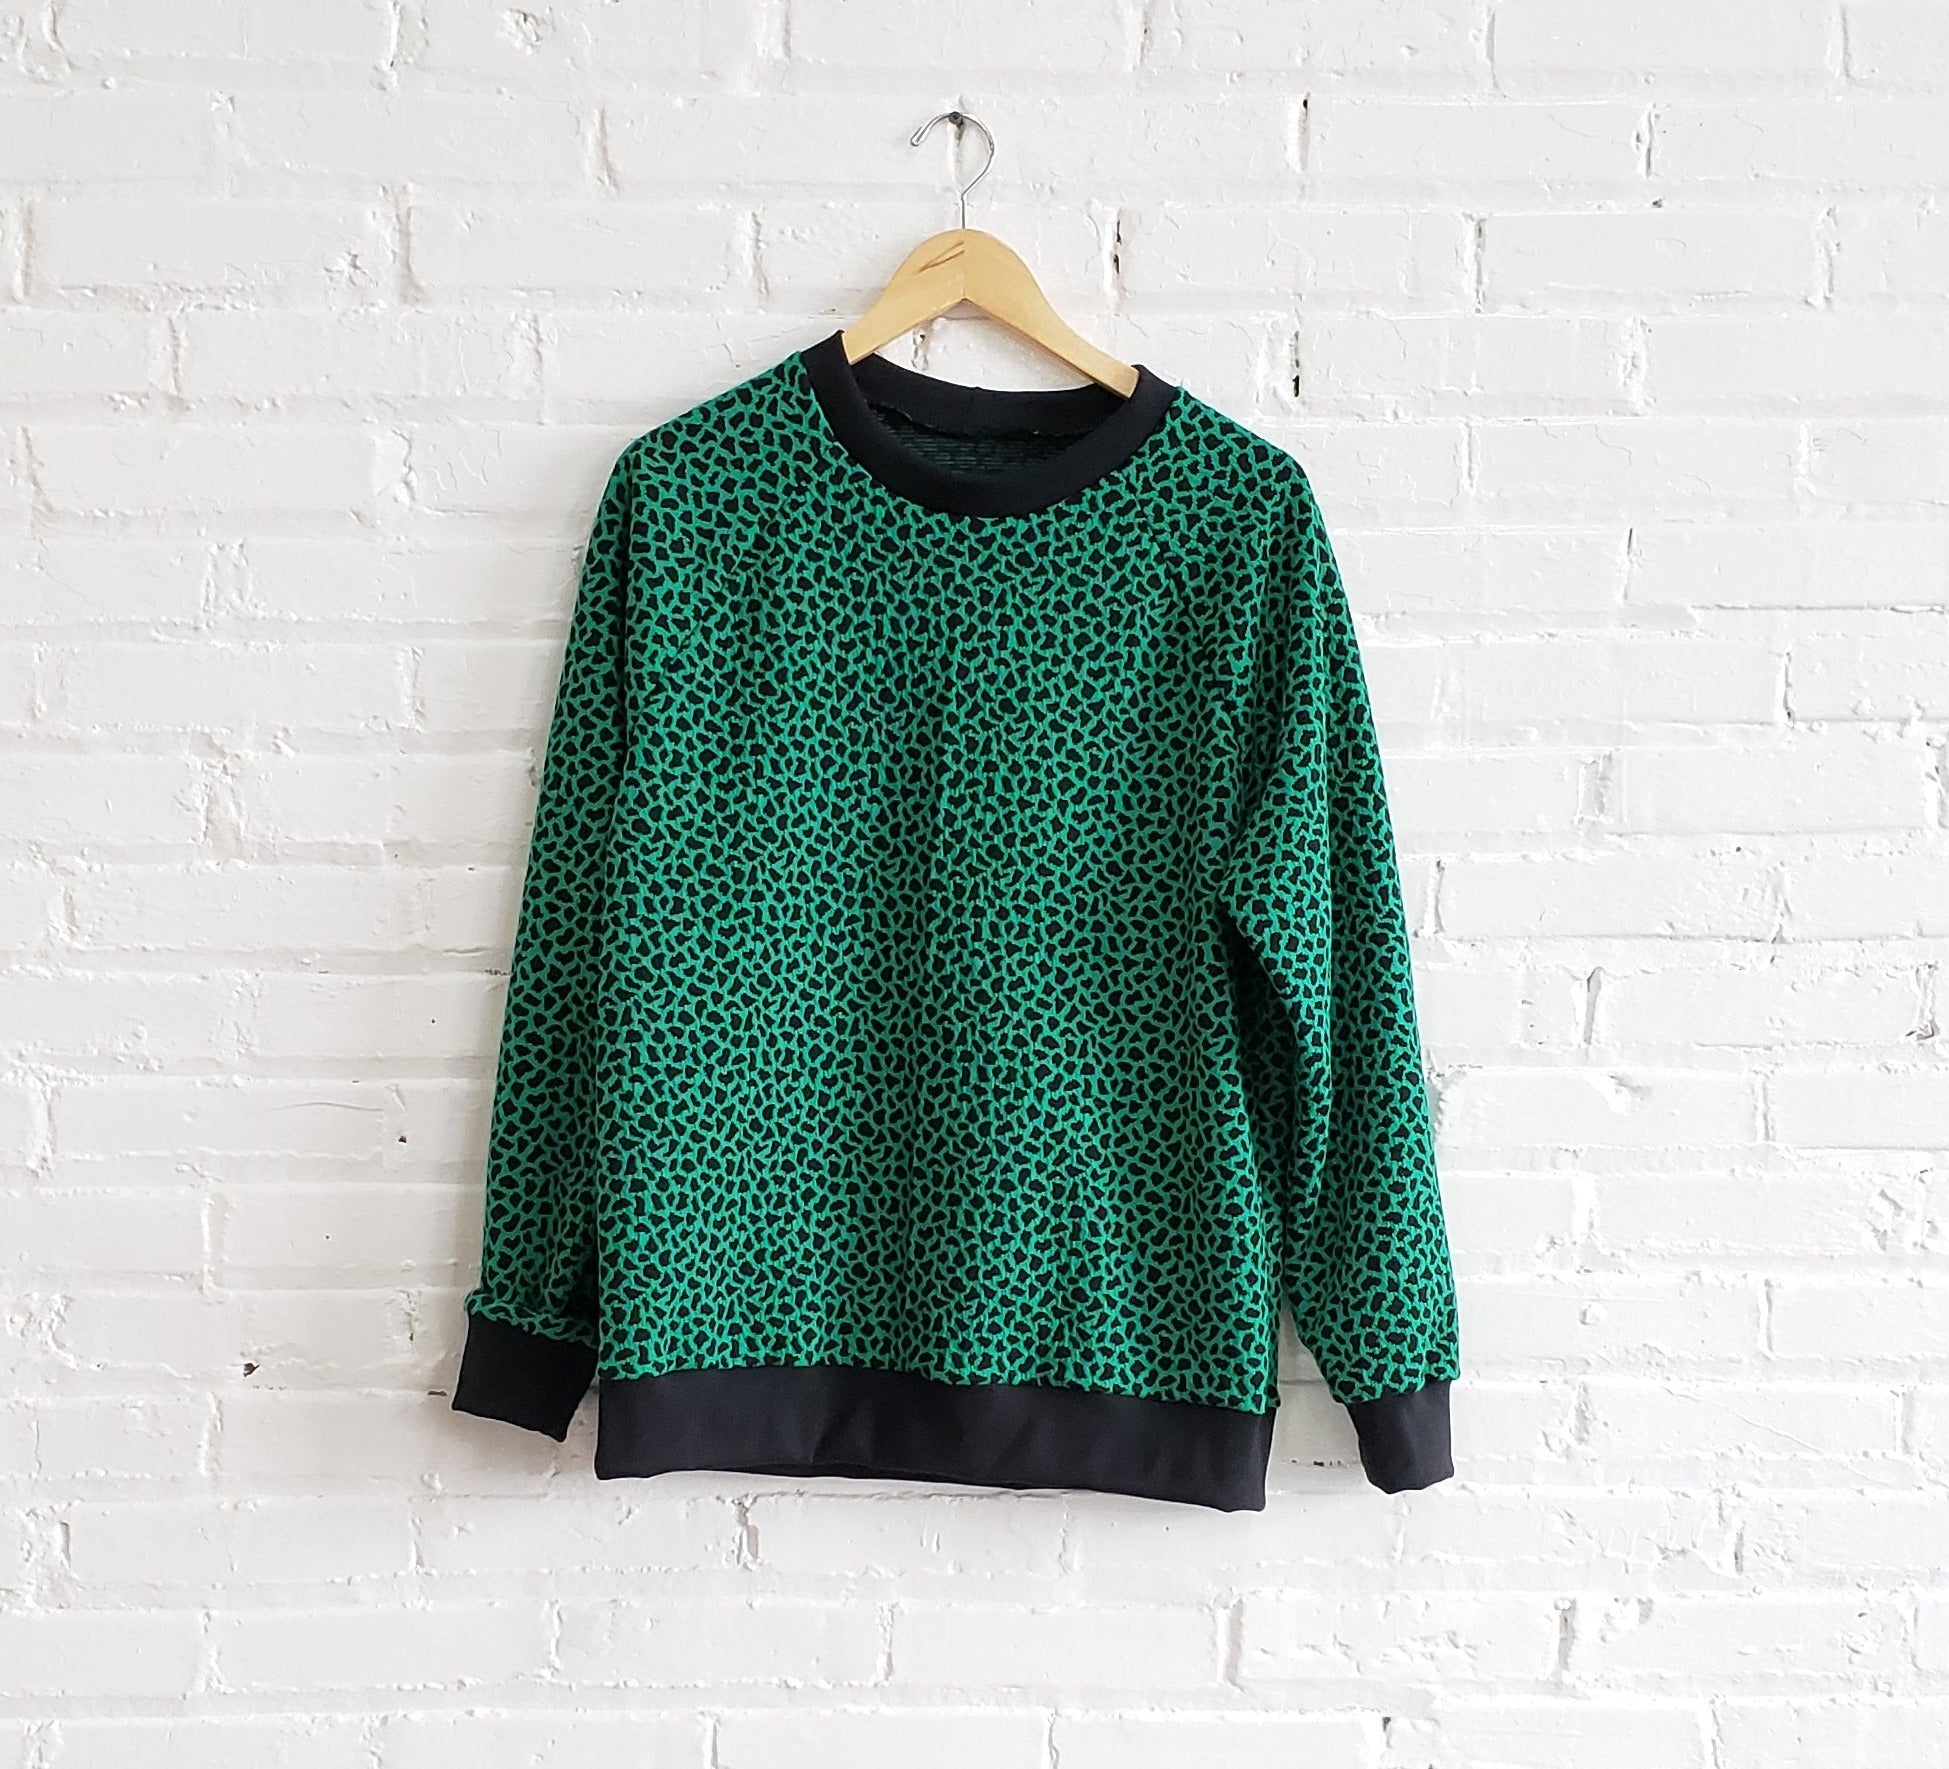 bright green sweatshirt with black cheetah spots and rib cuffs, displayed on wooden hanger against white brick wall